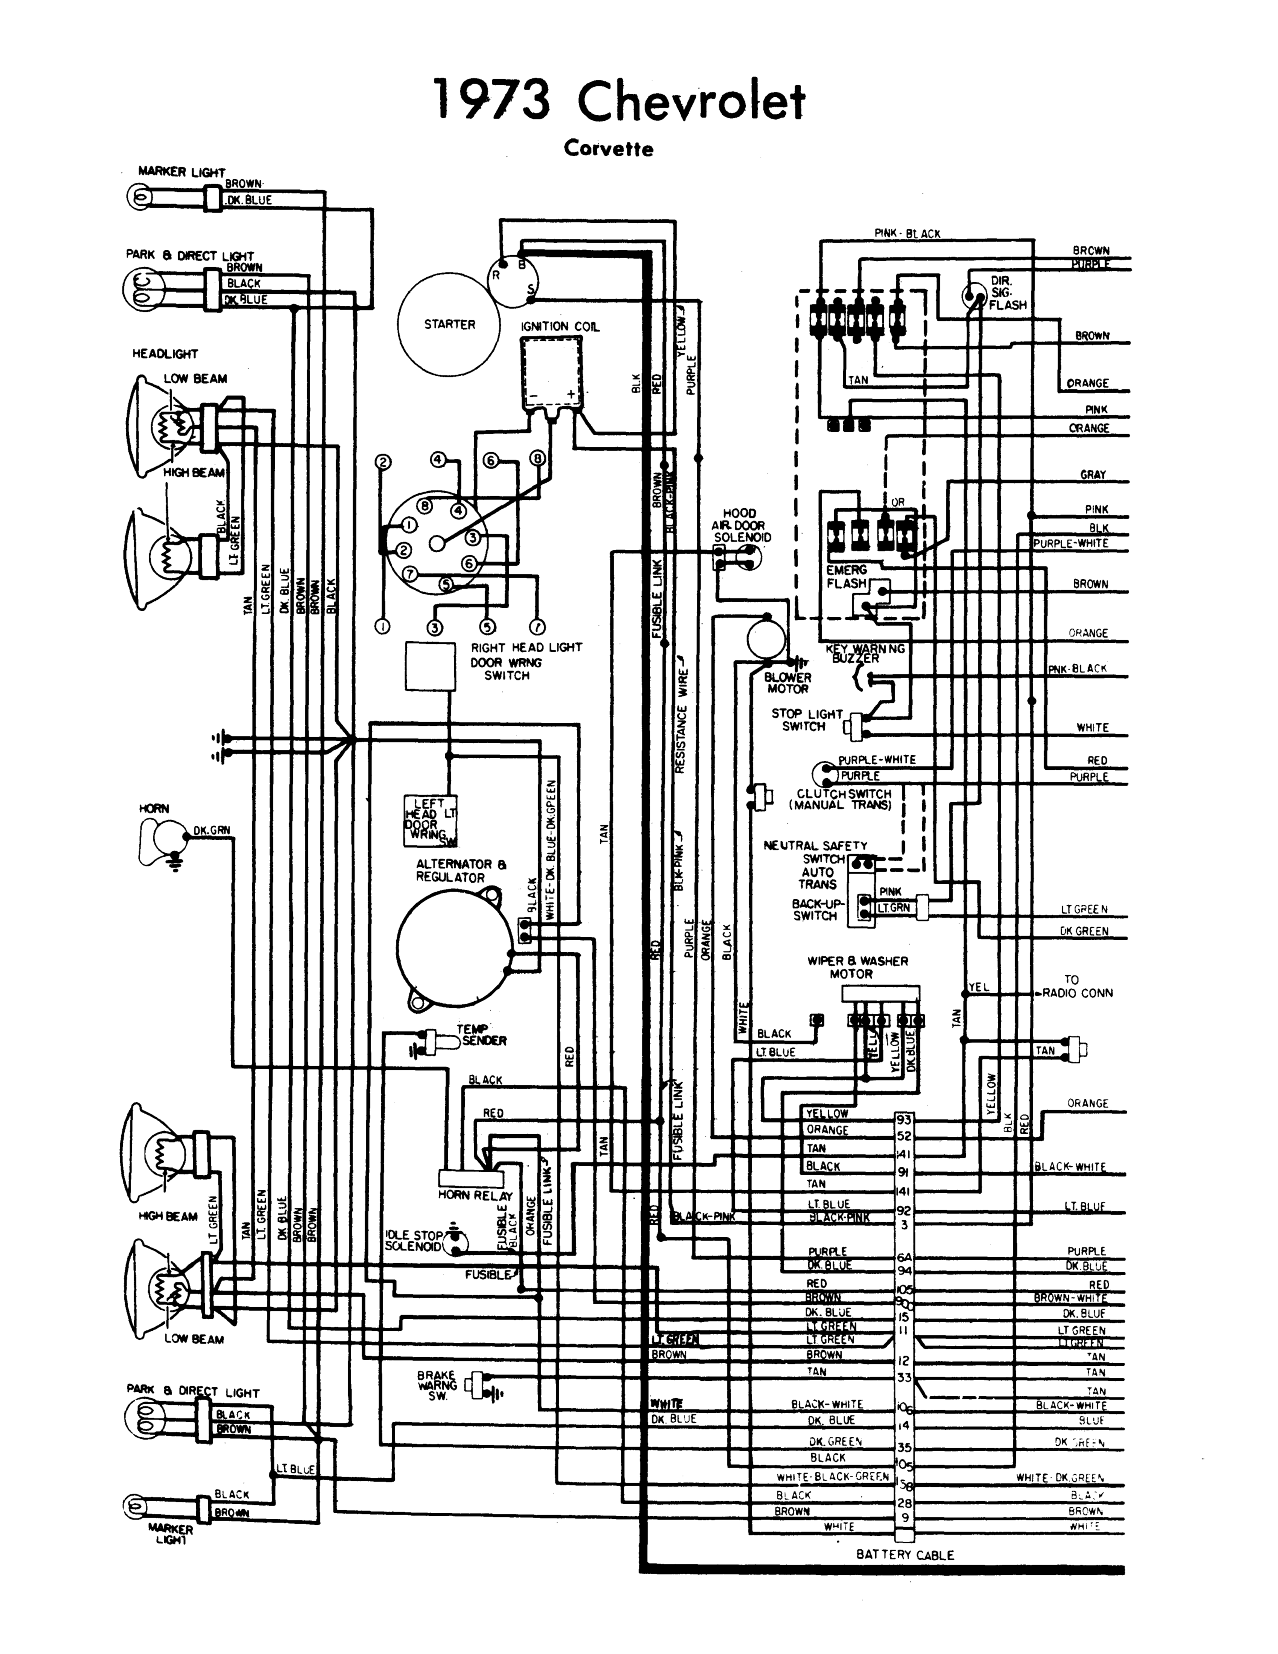 small resolution of wiring diagram 1973 corvette chevy corvette 1973 wiring diagrams